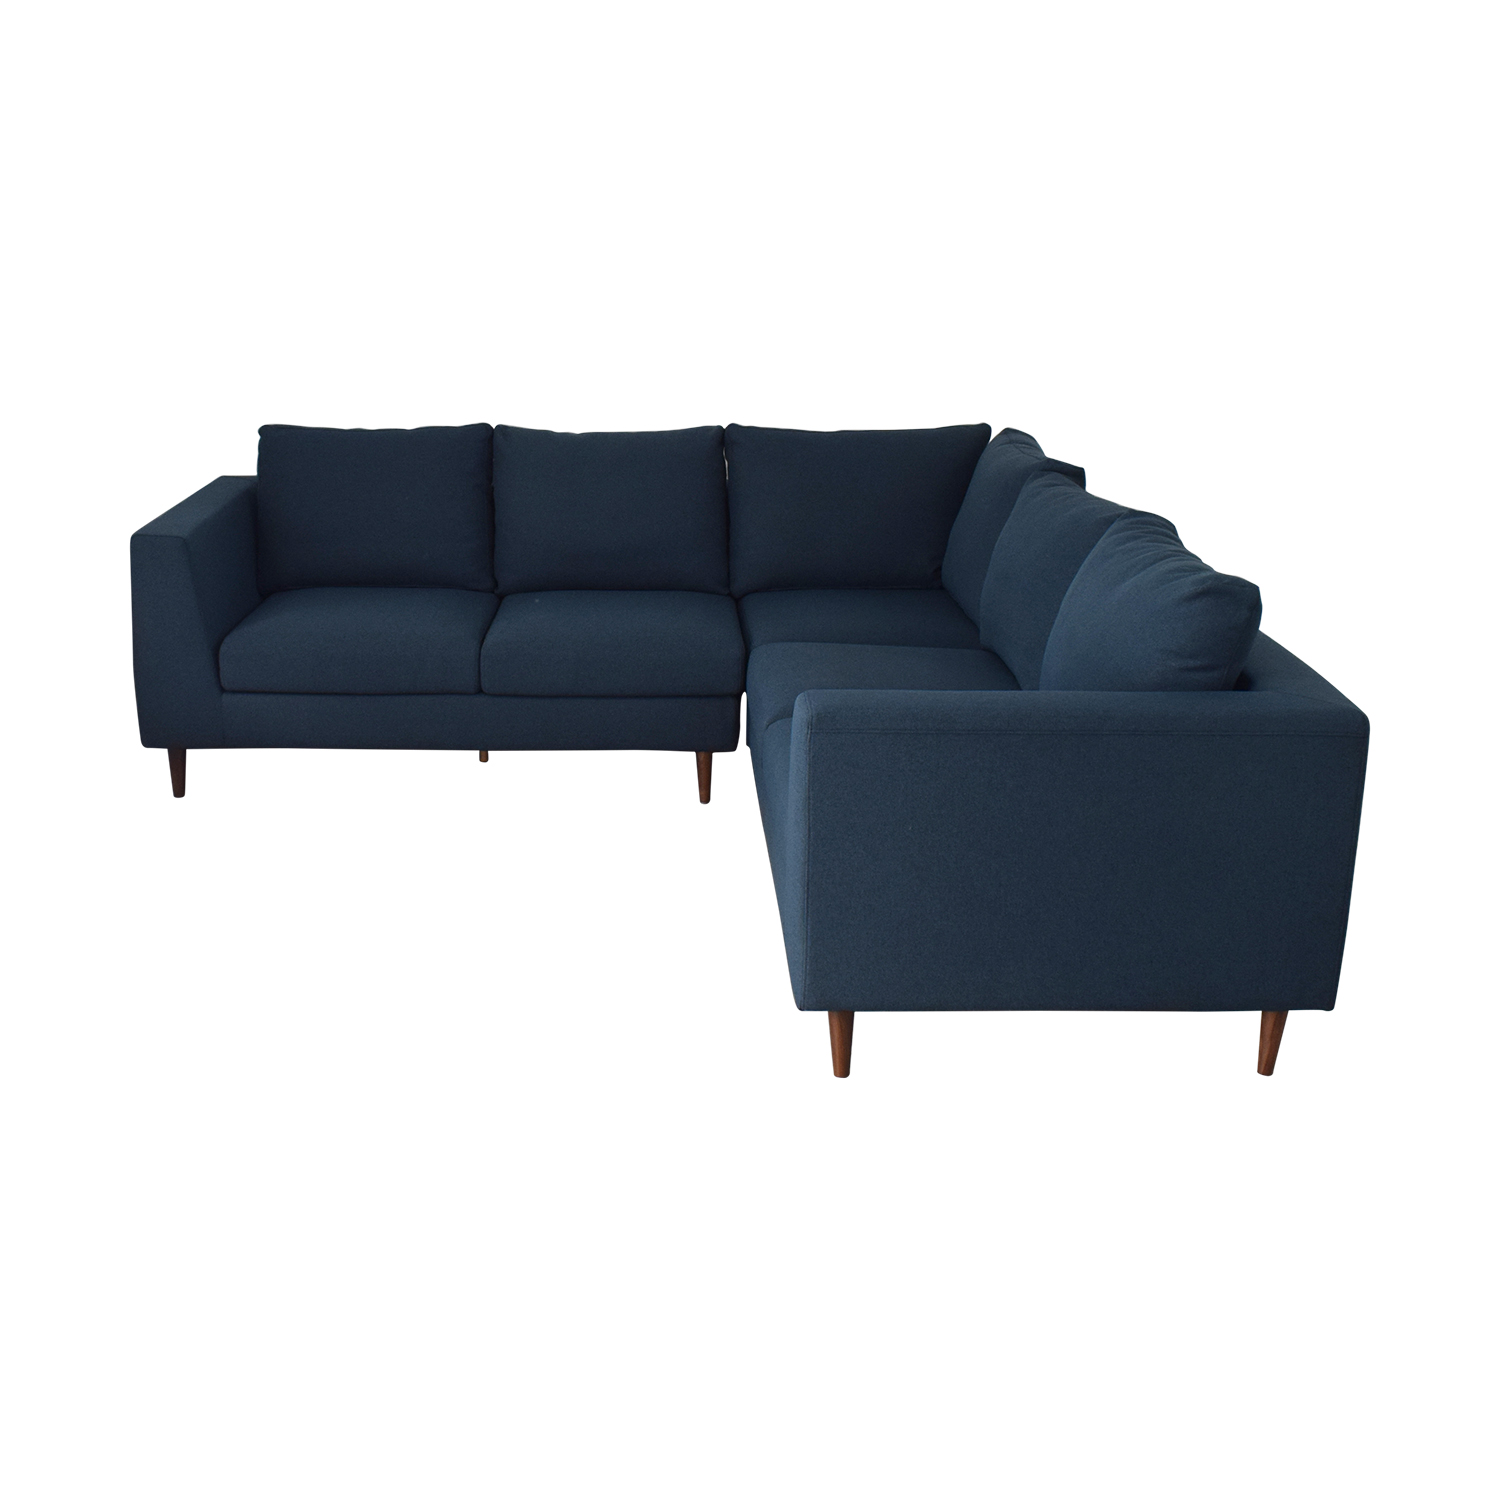 Swell 56 Off Asher Aegean Blue Sectional With Down Alternative Cushions Sofas Pdpeps Interior Chair Design Pdpepsorg